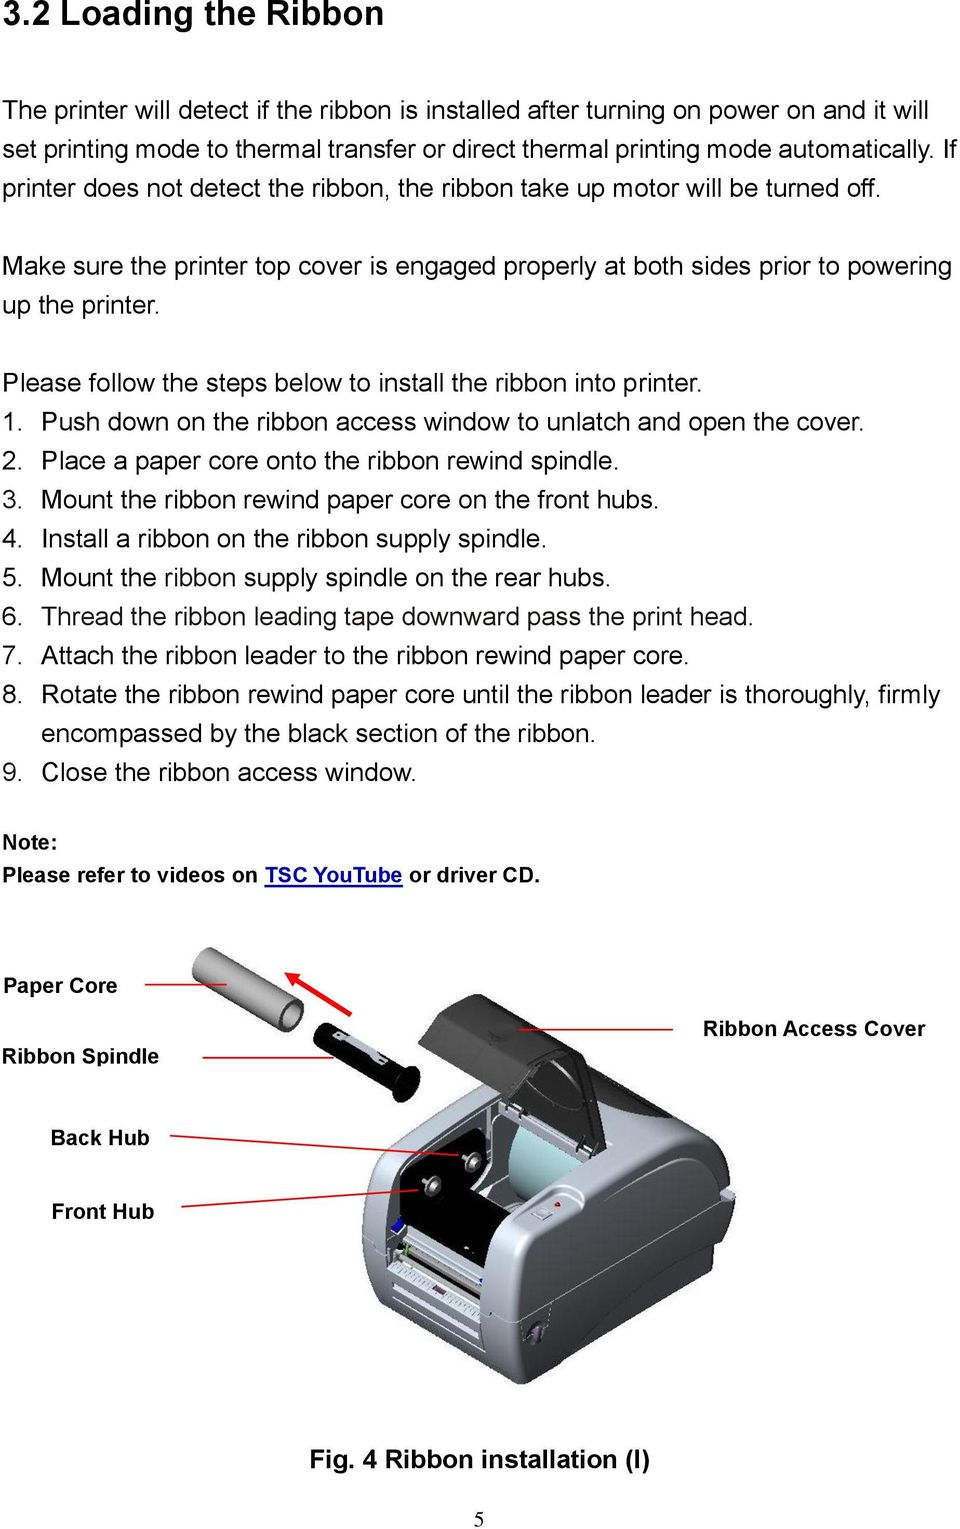 Please follow the steps below to install the ribbon into printer. 1. Push down on the ribbon access window to unlatch and open the cover. 2. Place a paper core onto the ribbon rewind spindle. 3.